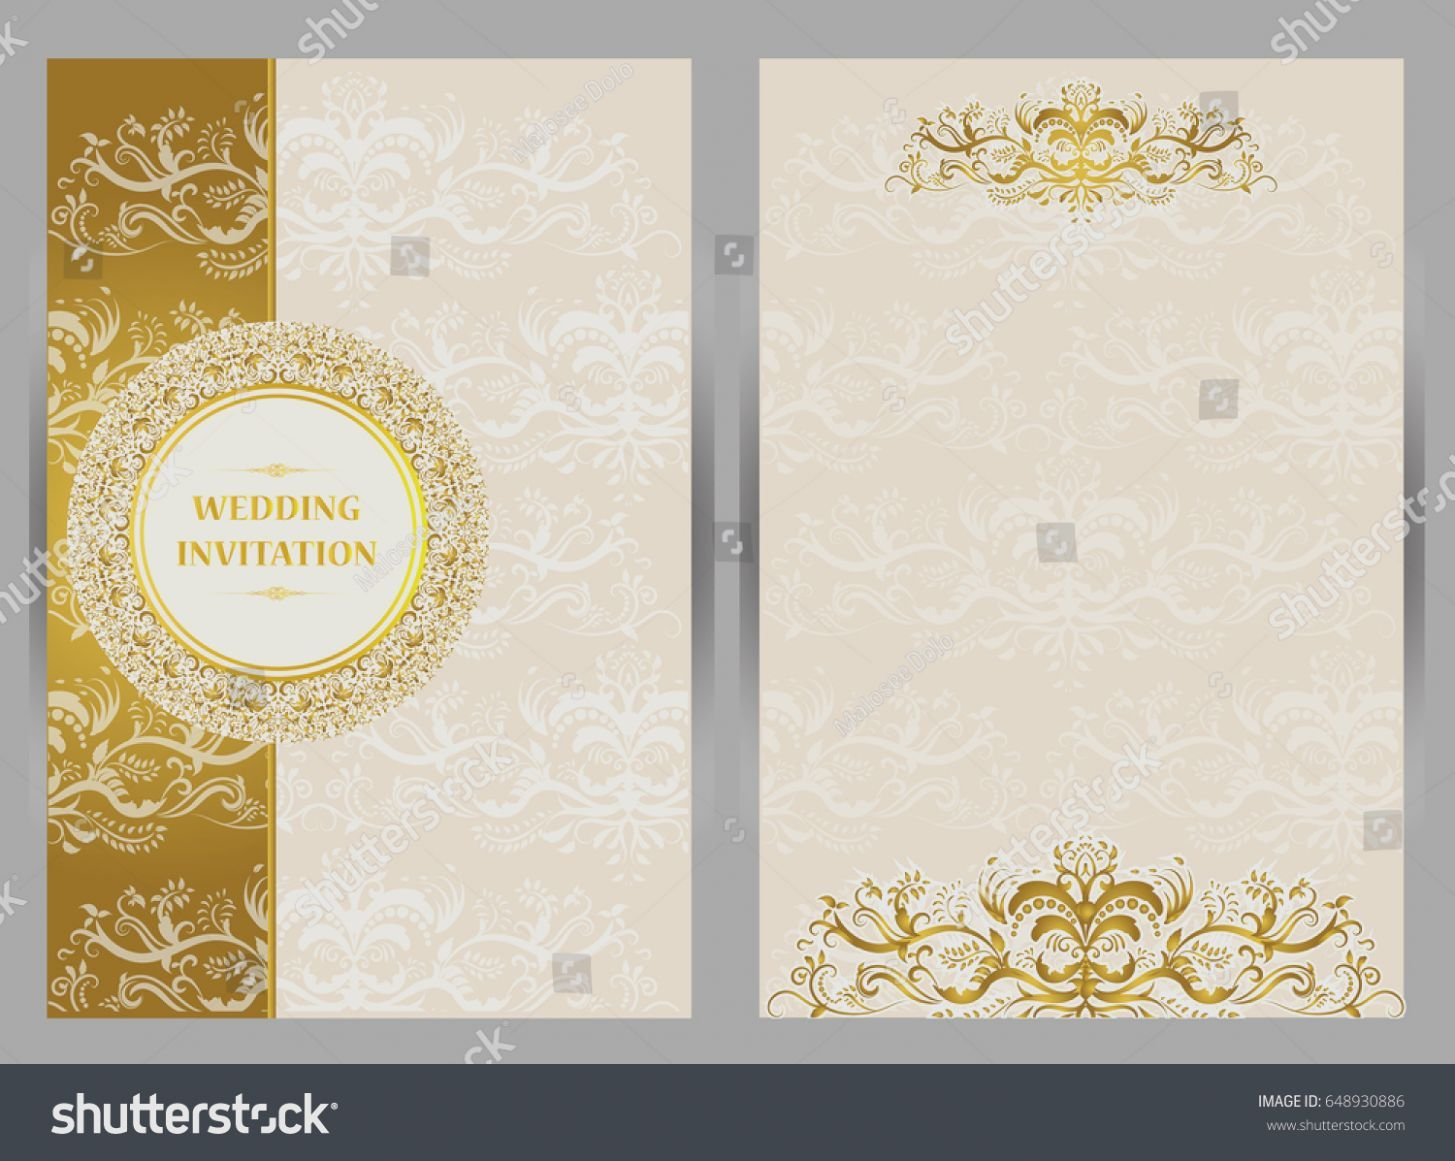 7 Wedding Invitation Card Background Design Hd Wedding Invitations Marriage Invitation Card Wedding Invitation Background